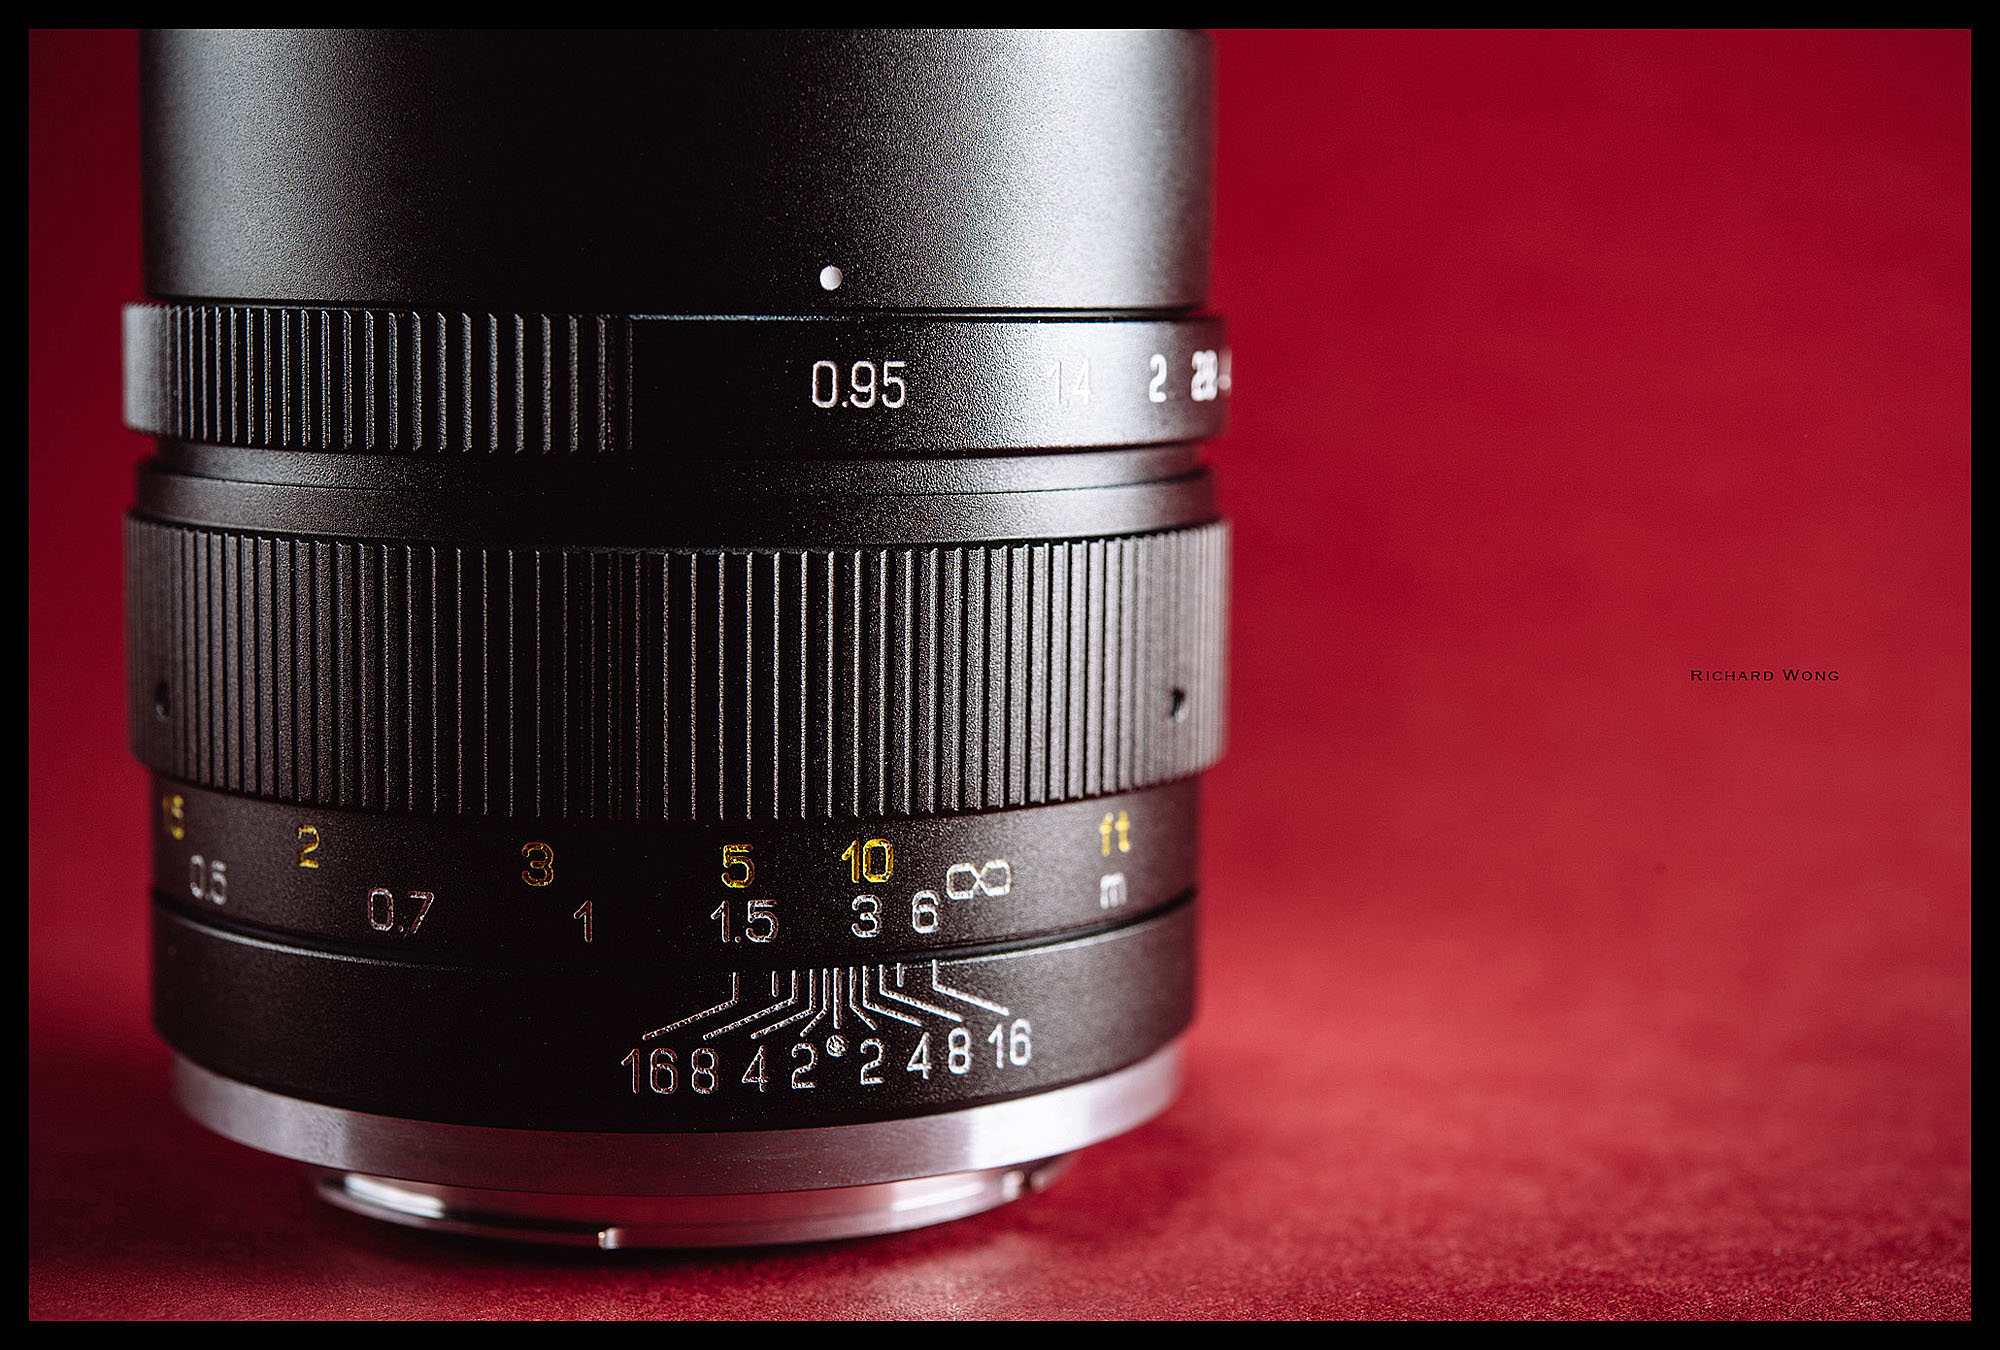 mitakon-speedmaster-35mm-f-0.95-II-review-05